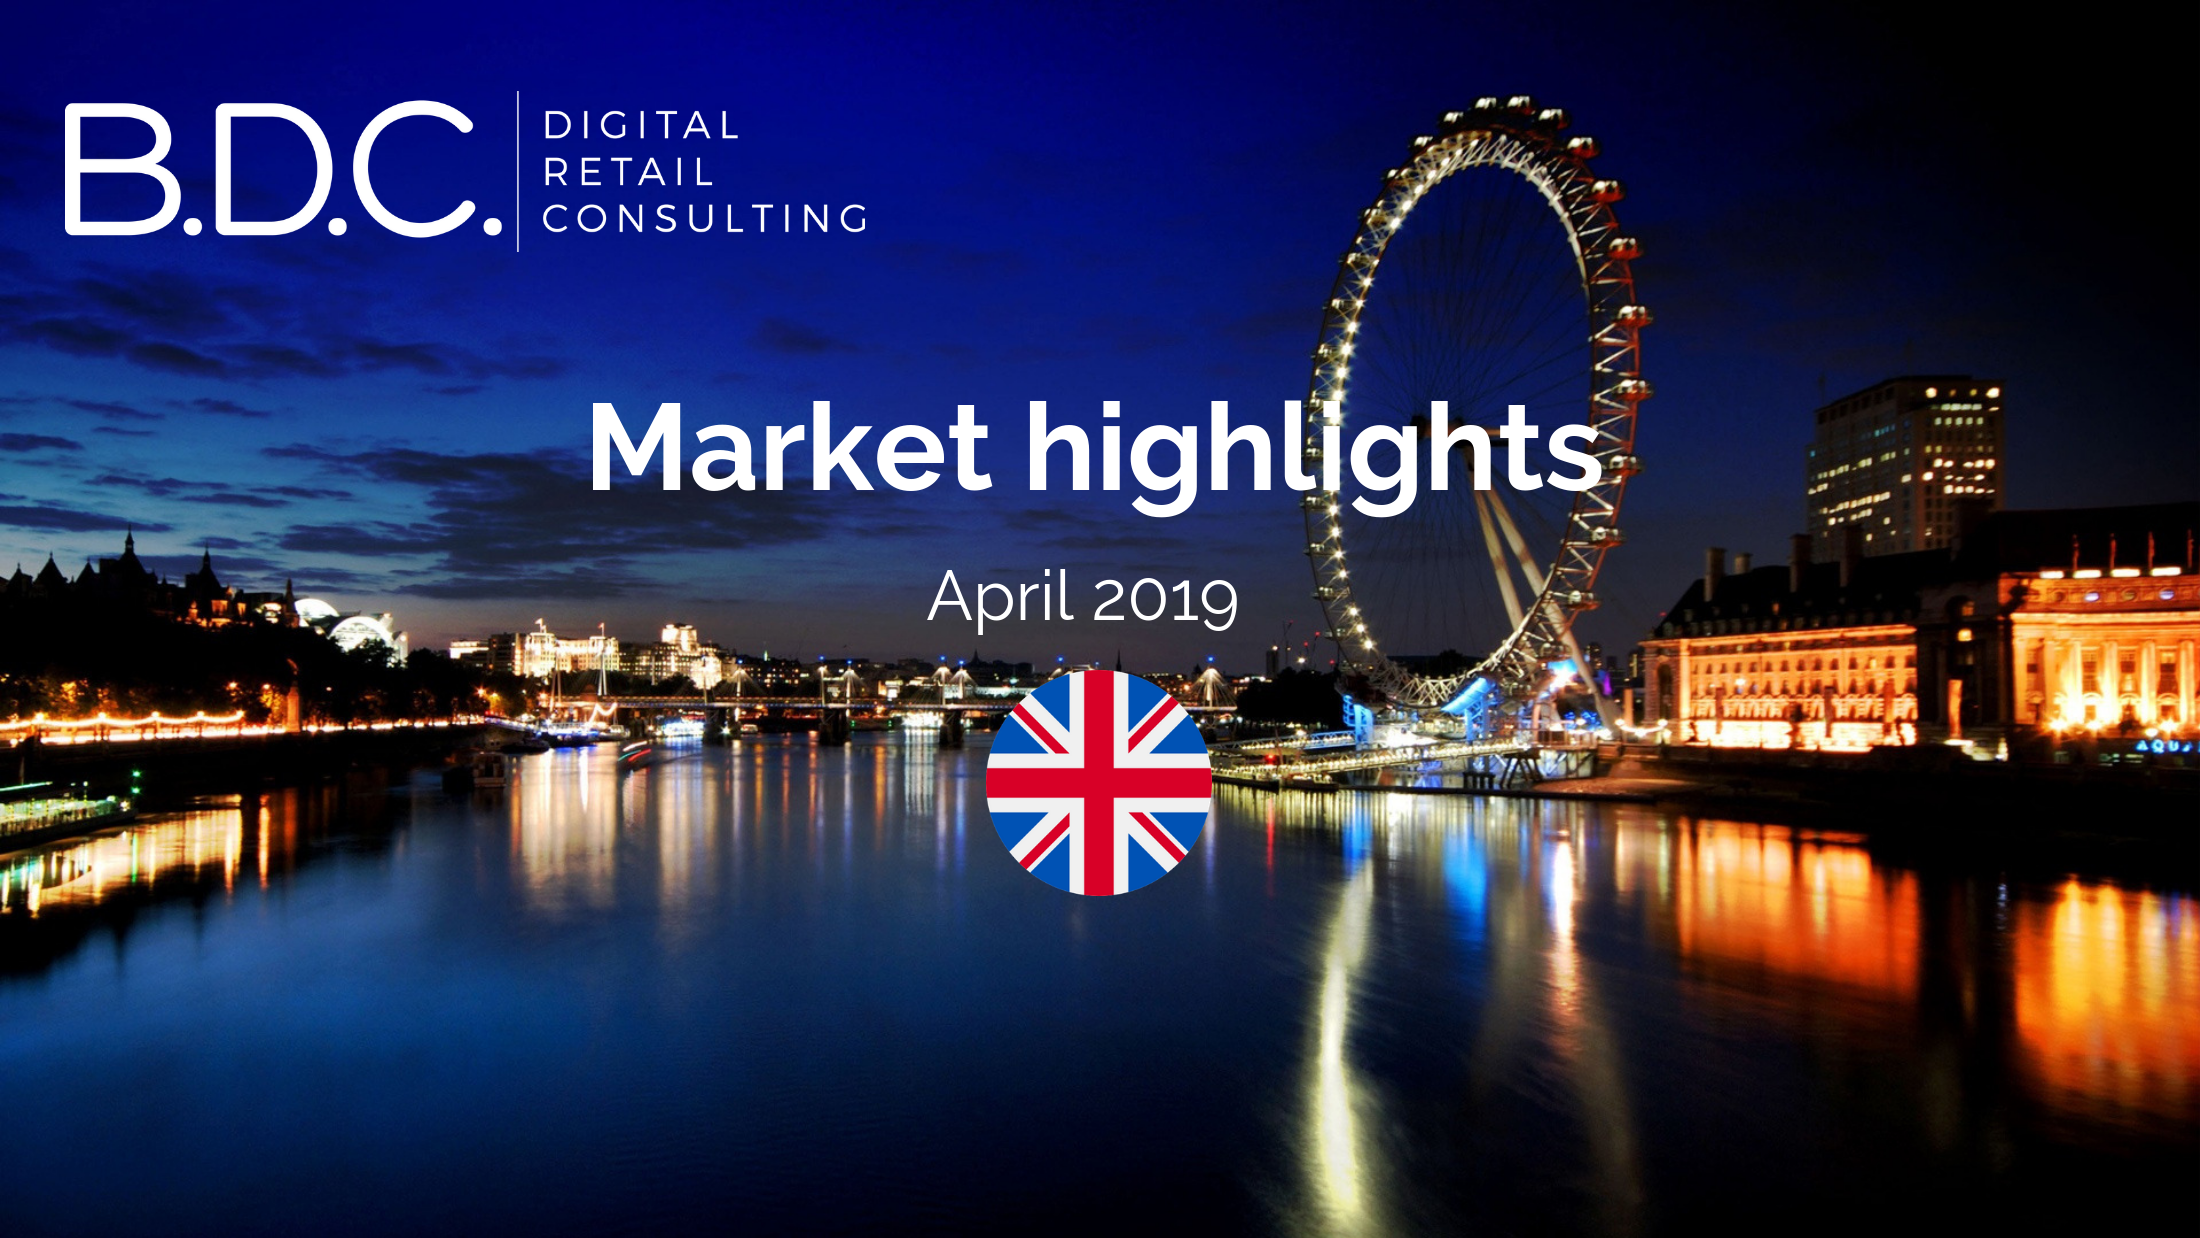 Trends News 2 - UK MARKET HIGHLIGHTS – APRIL 2019